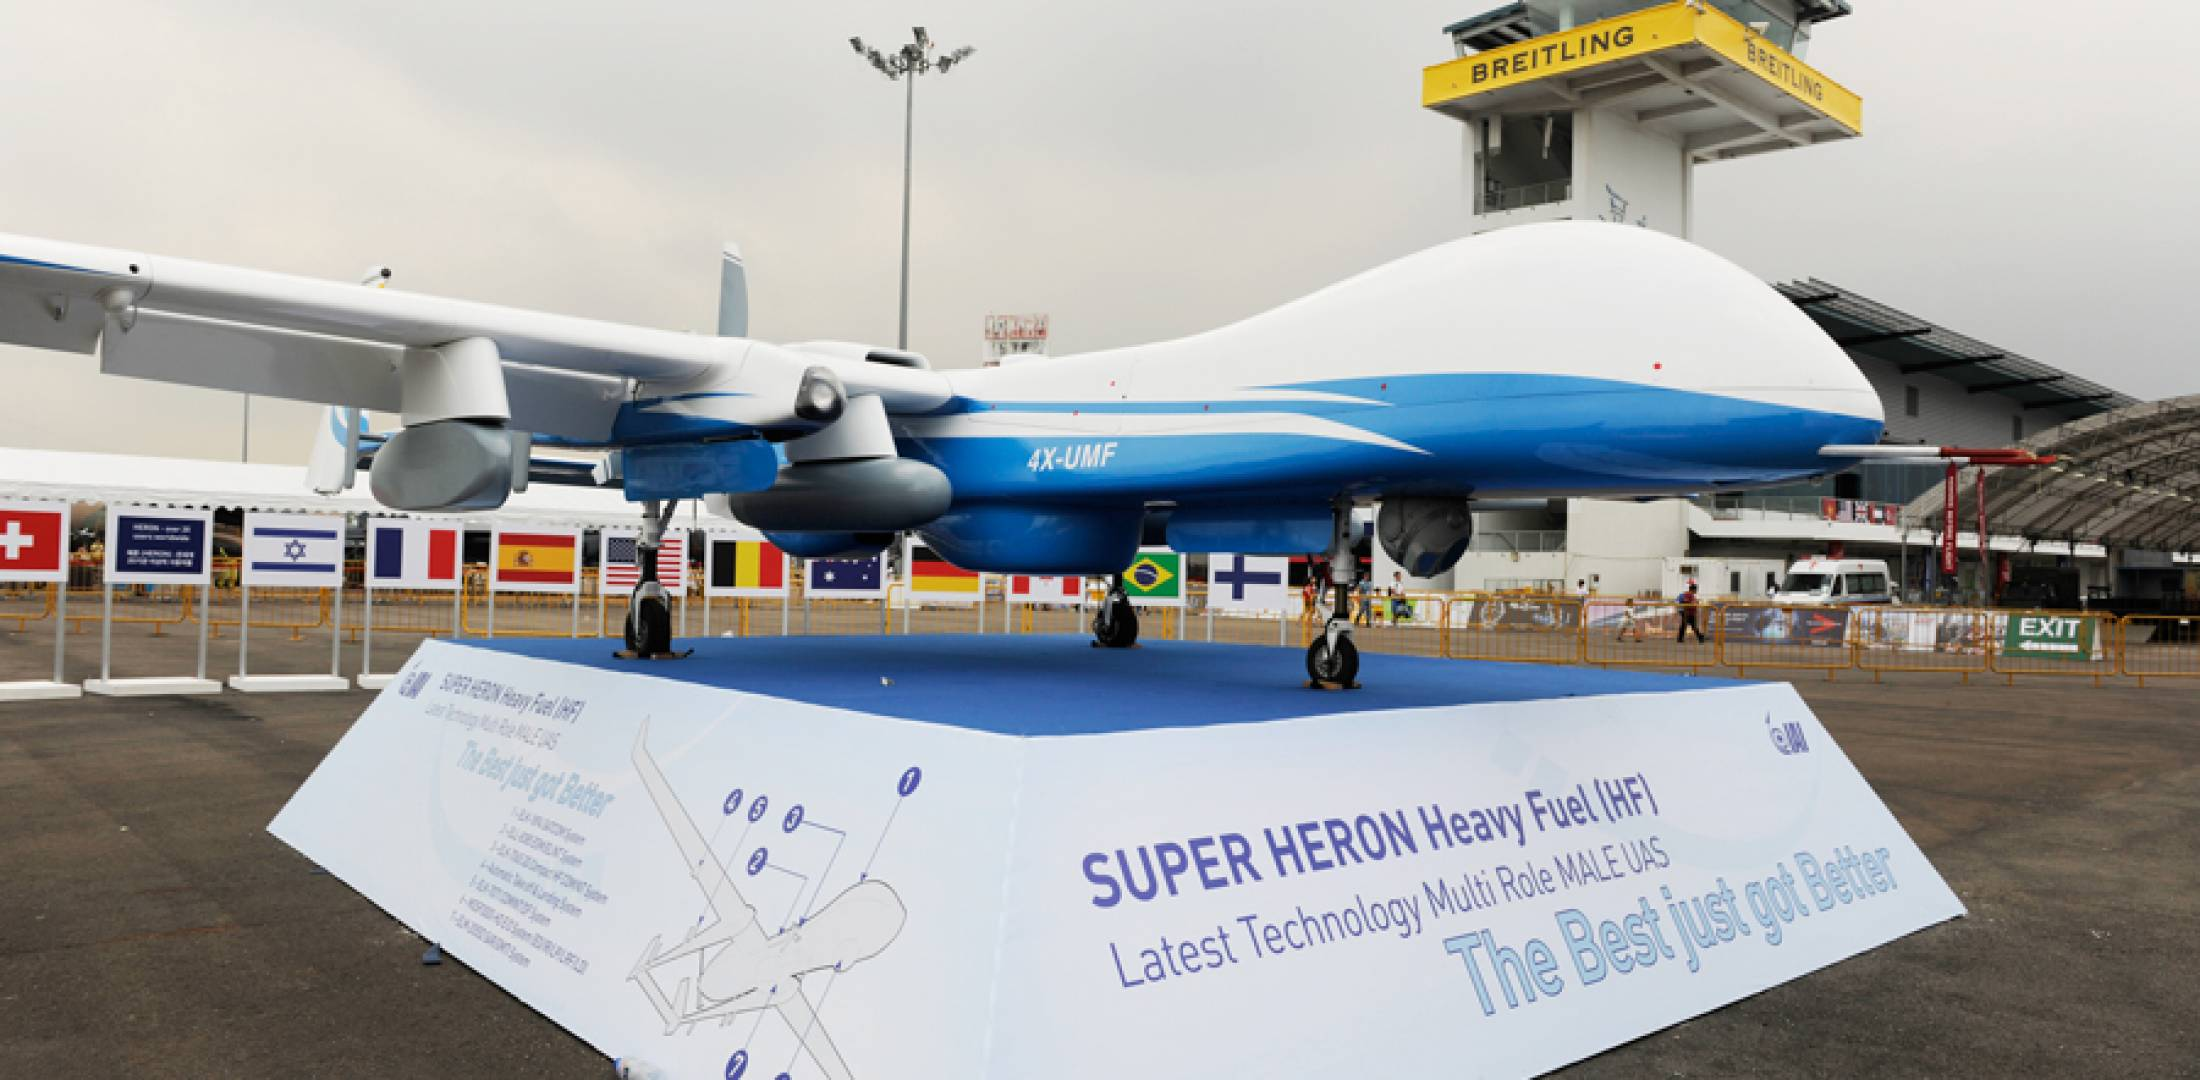 IAI has launched the Super Heron UAV, a reworking of the popular and combat-proven Heron 1, operated by more than 20 countries. The vehicle is powered by a heavy-fuel engine, and has aerodynamic enhancements such as winglets.